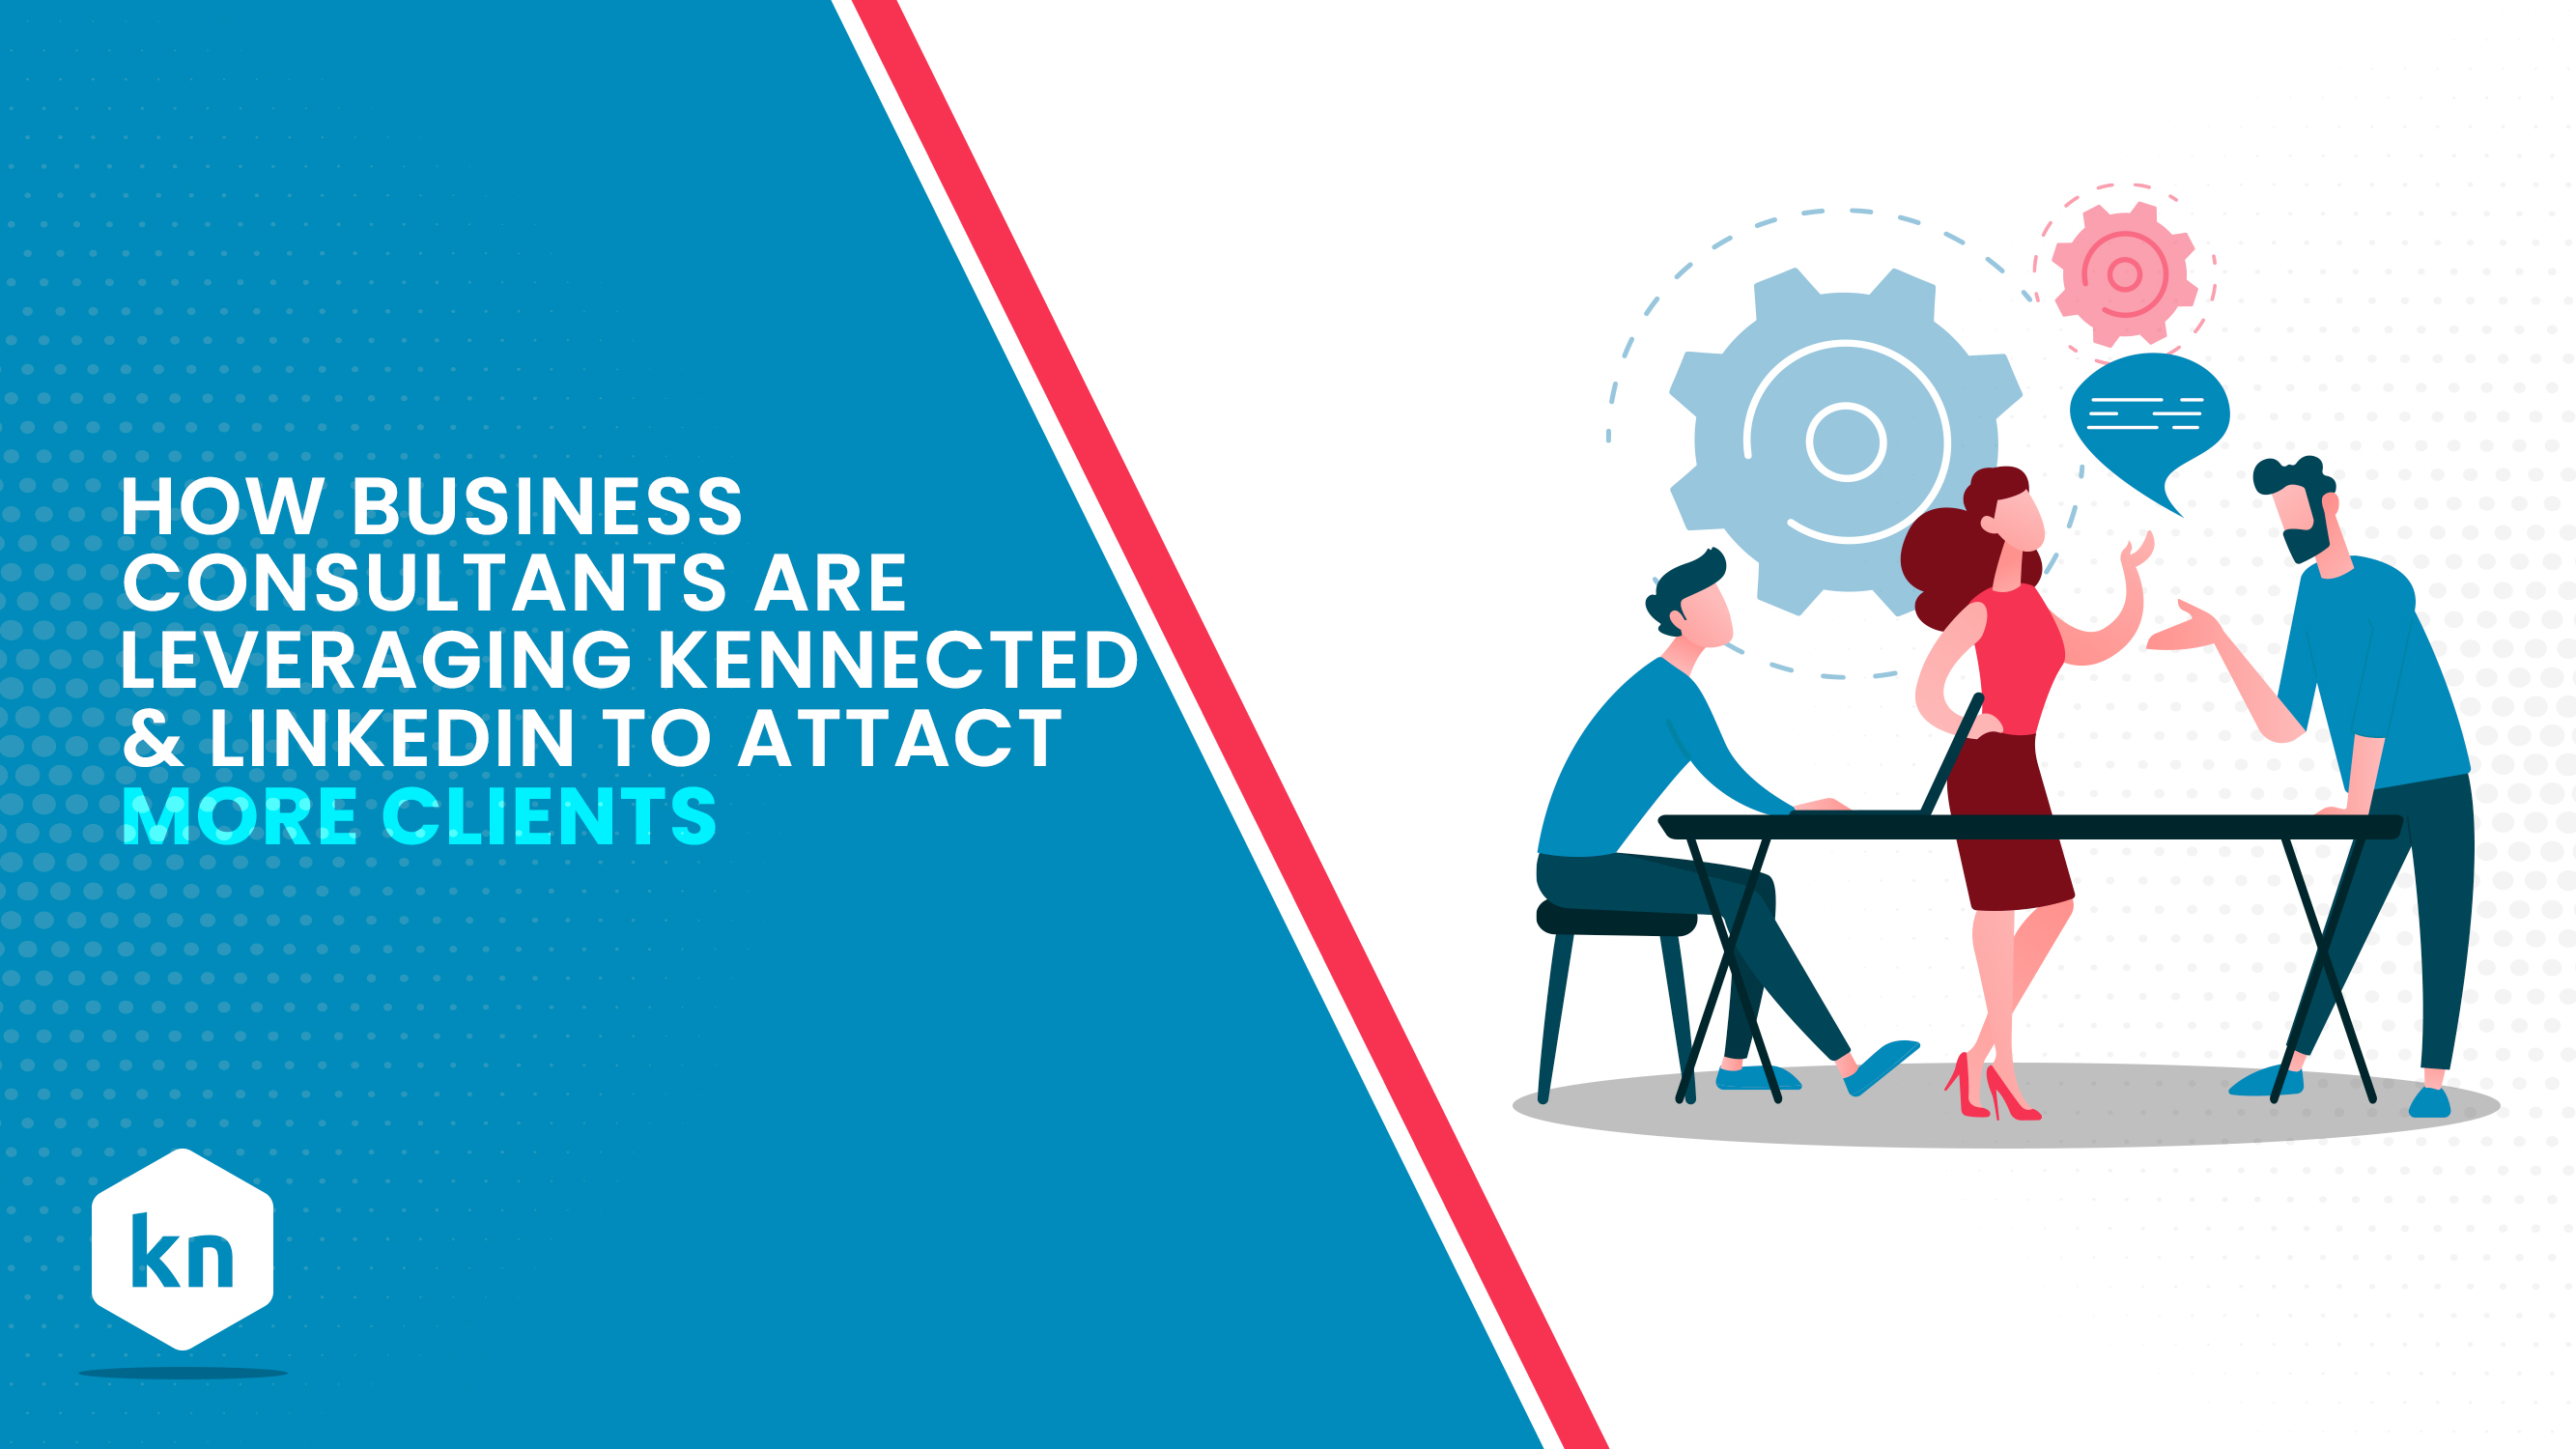 How Business Consultants Are Leveraging Kennected & LinkedIn To Attract More Clients